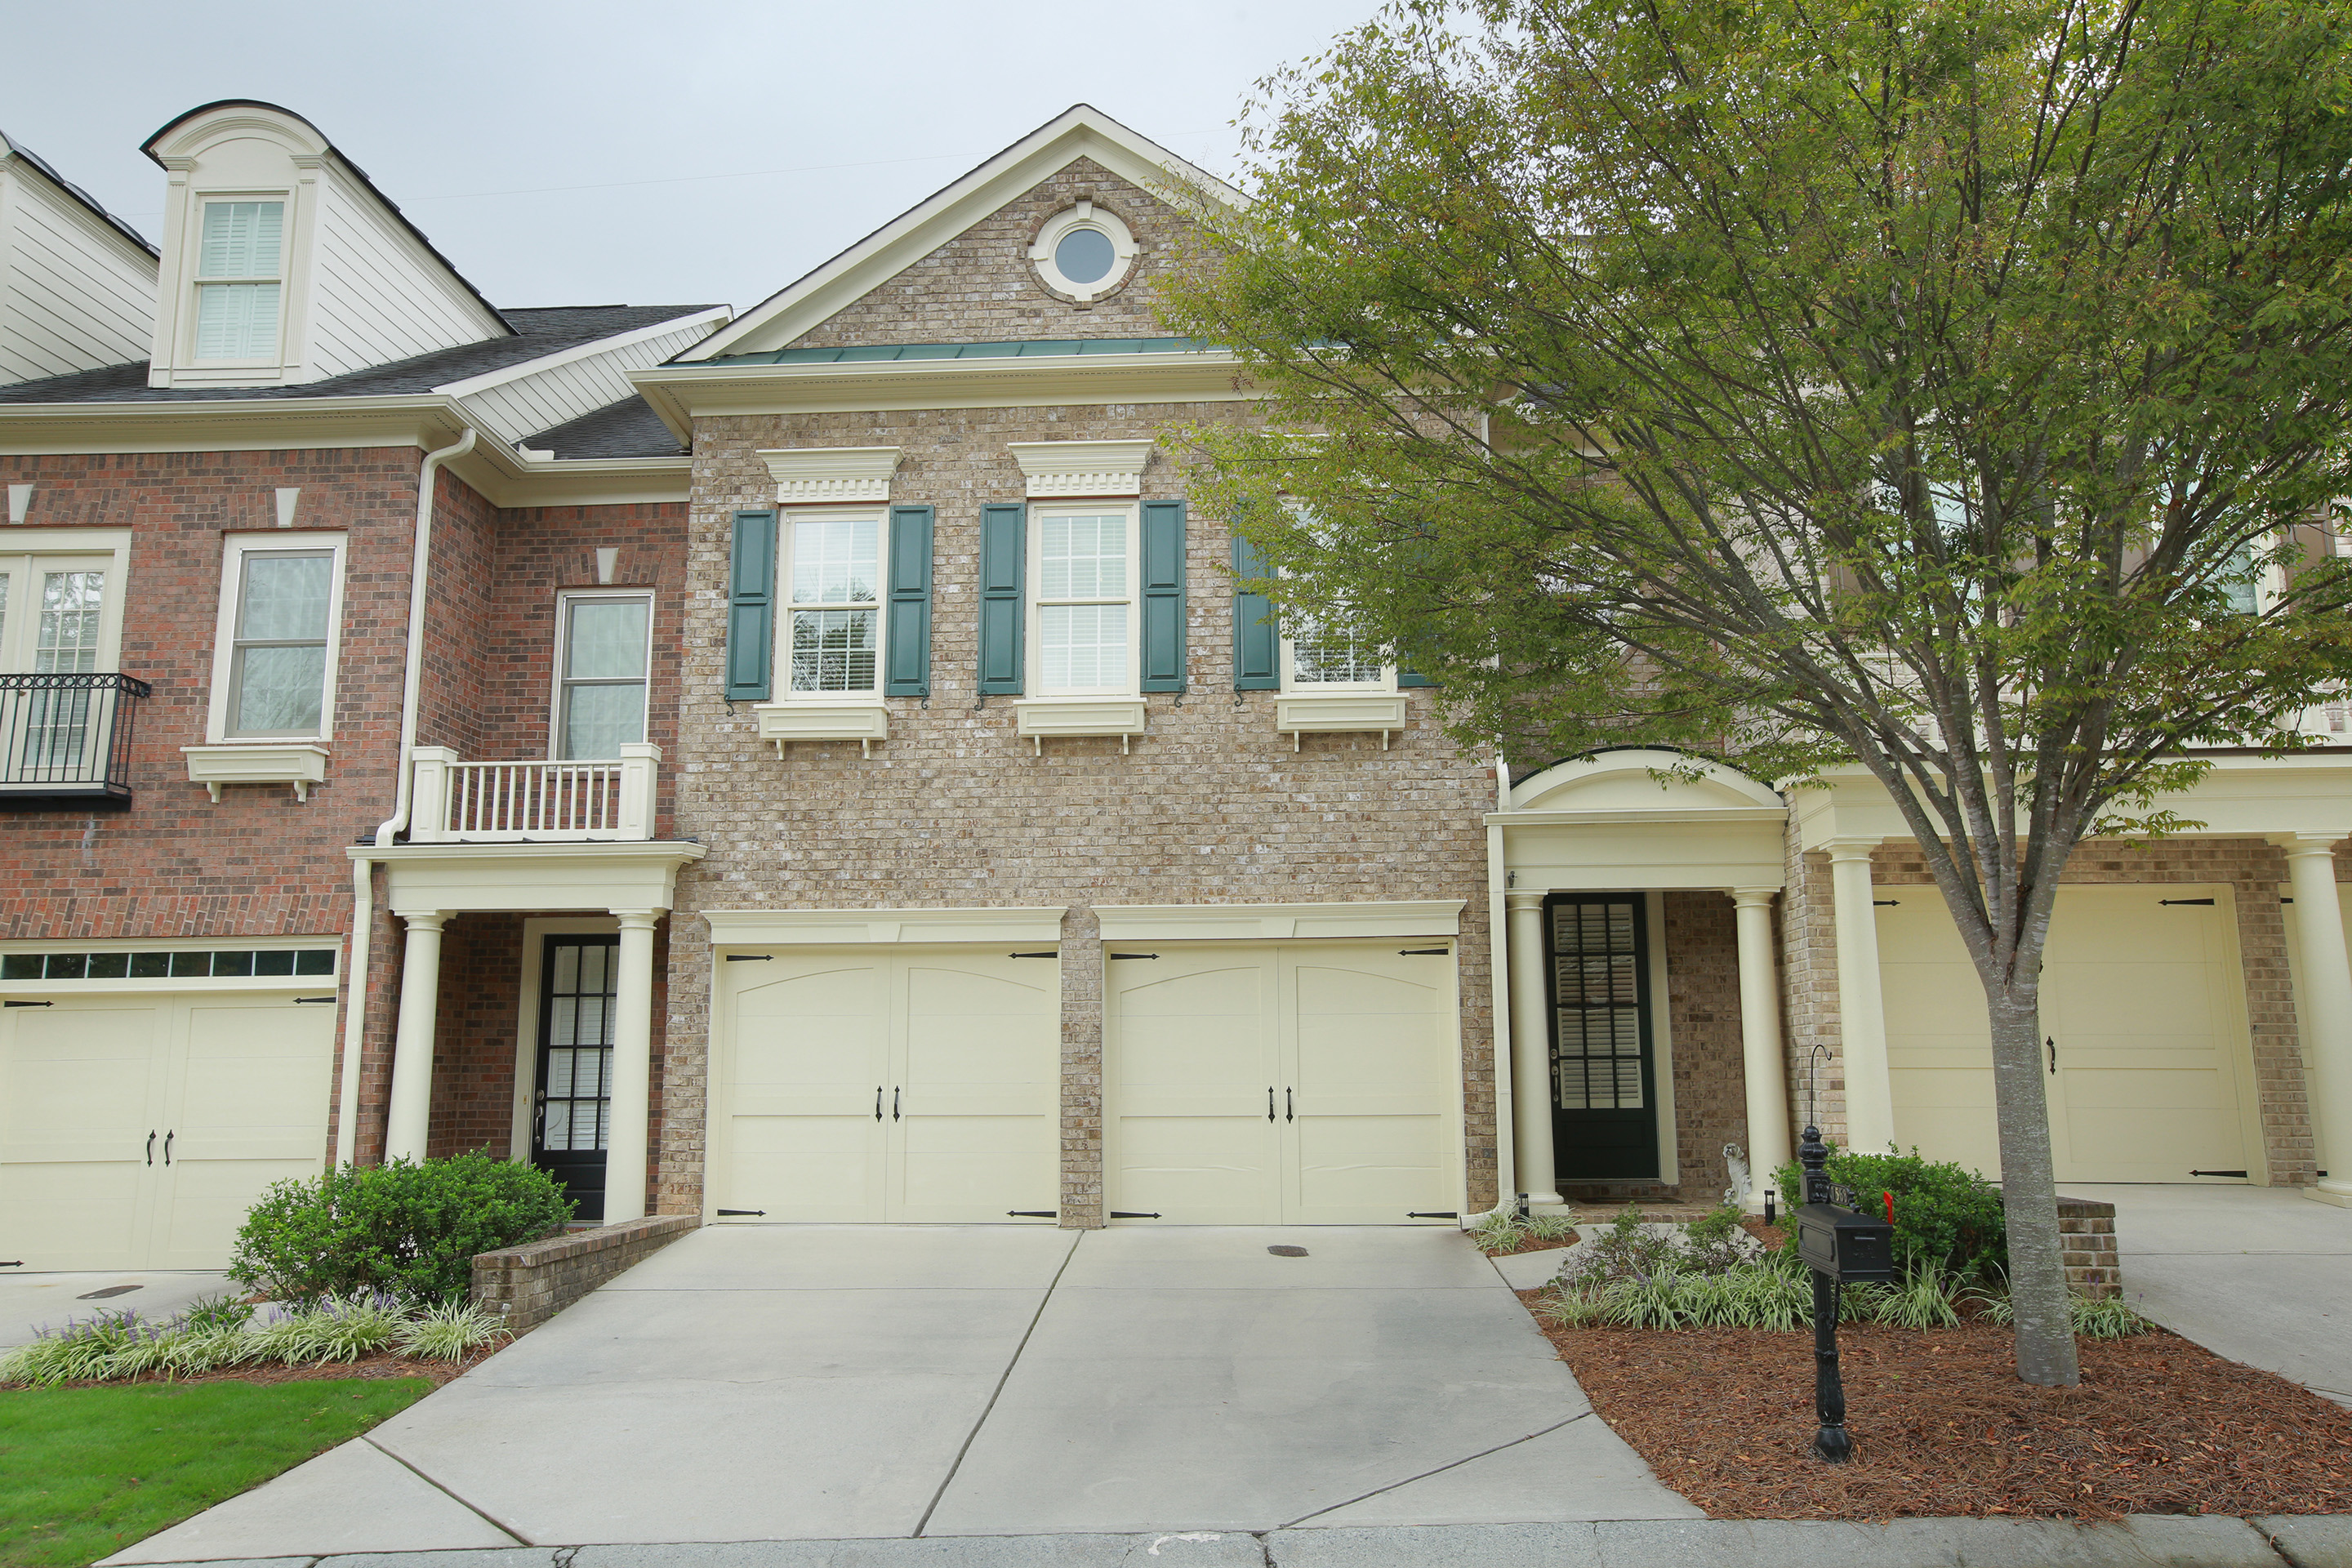 Property For Sale at Stunning Resale in John Weiland Townhome Community